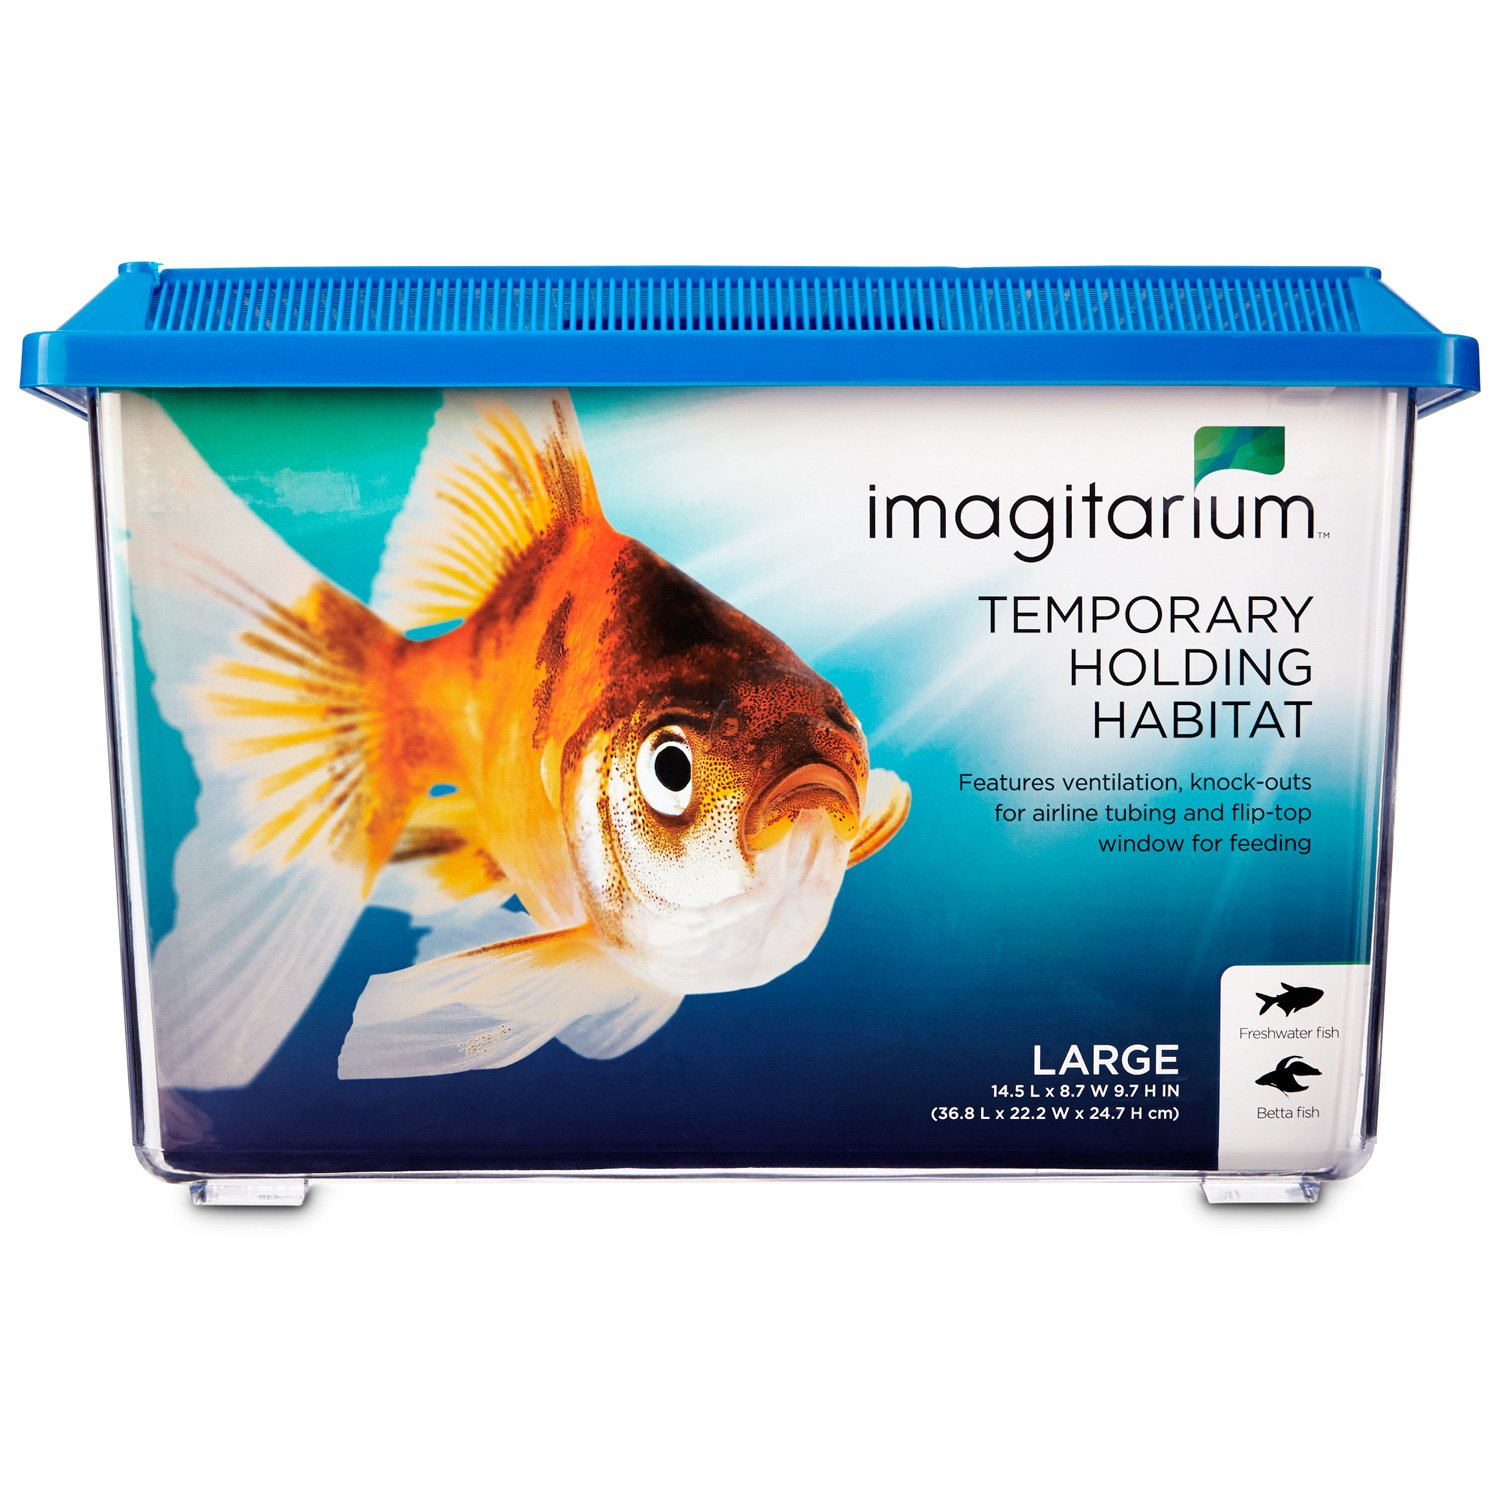 Fish aquarium price india - Imagitarium Pet Keeper For Aquarium Fish Large